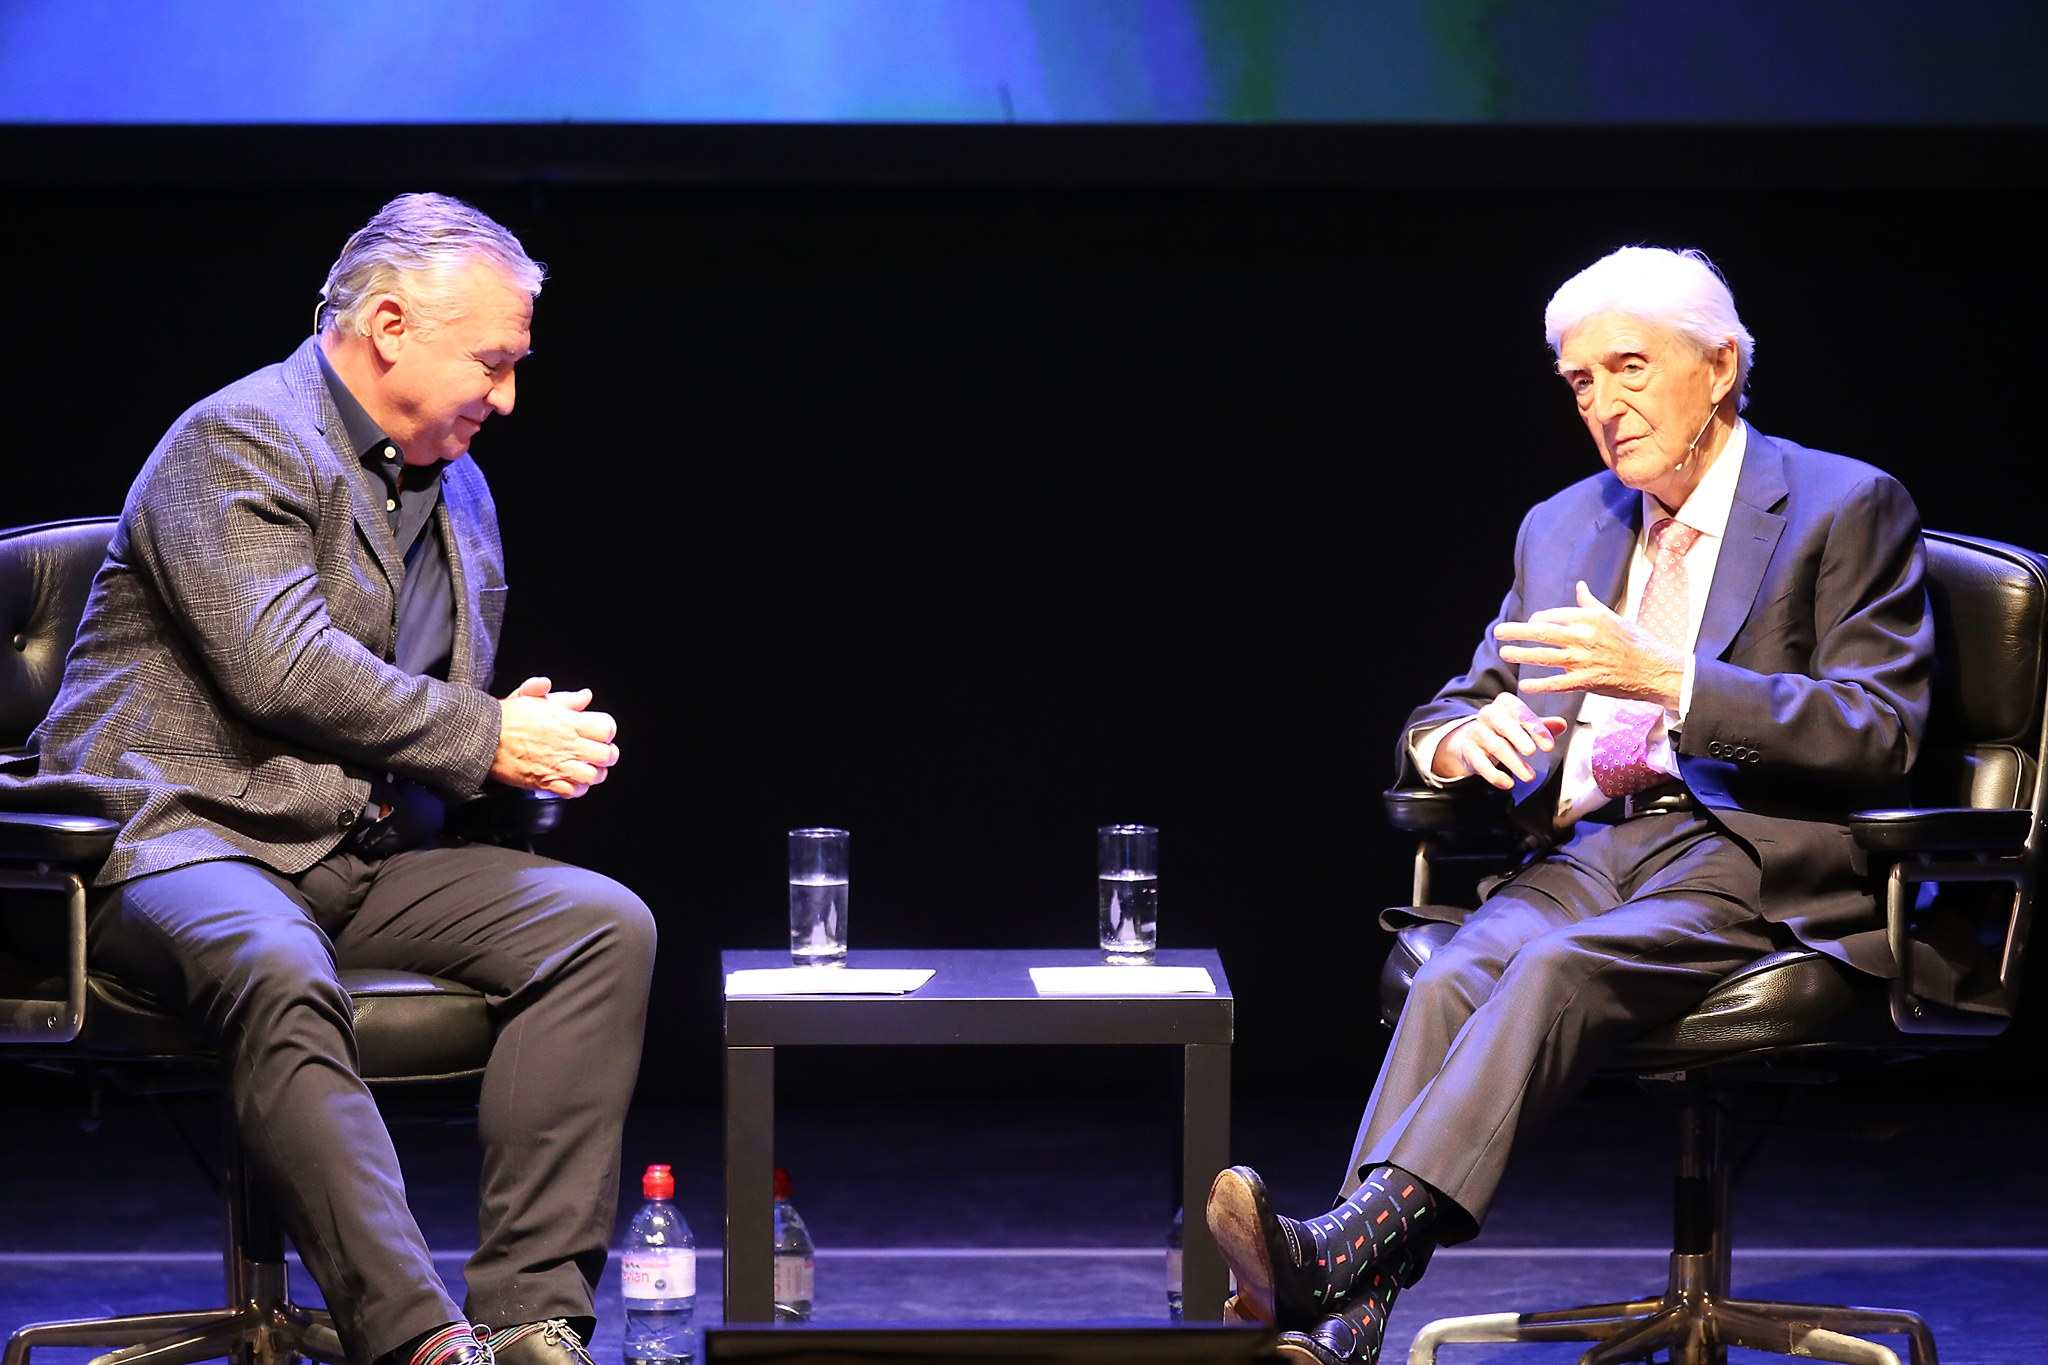 Sir Michael being interviewed by his son Michael Jr on stage in Dundee.